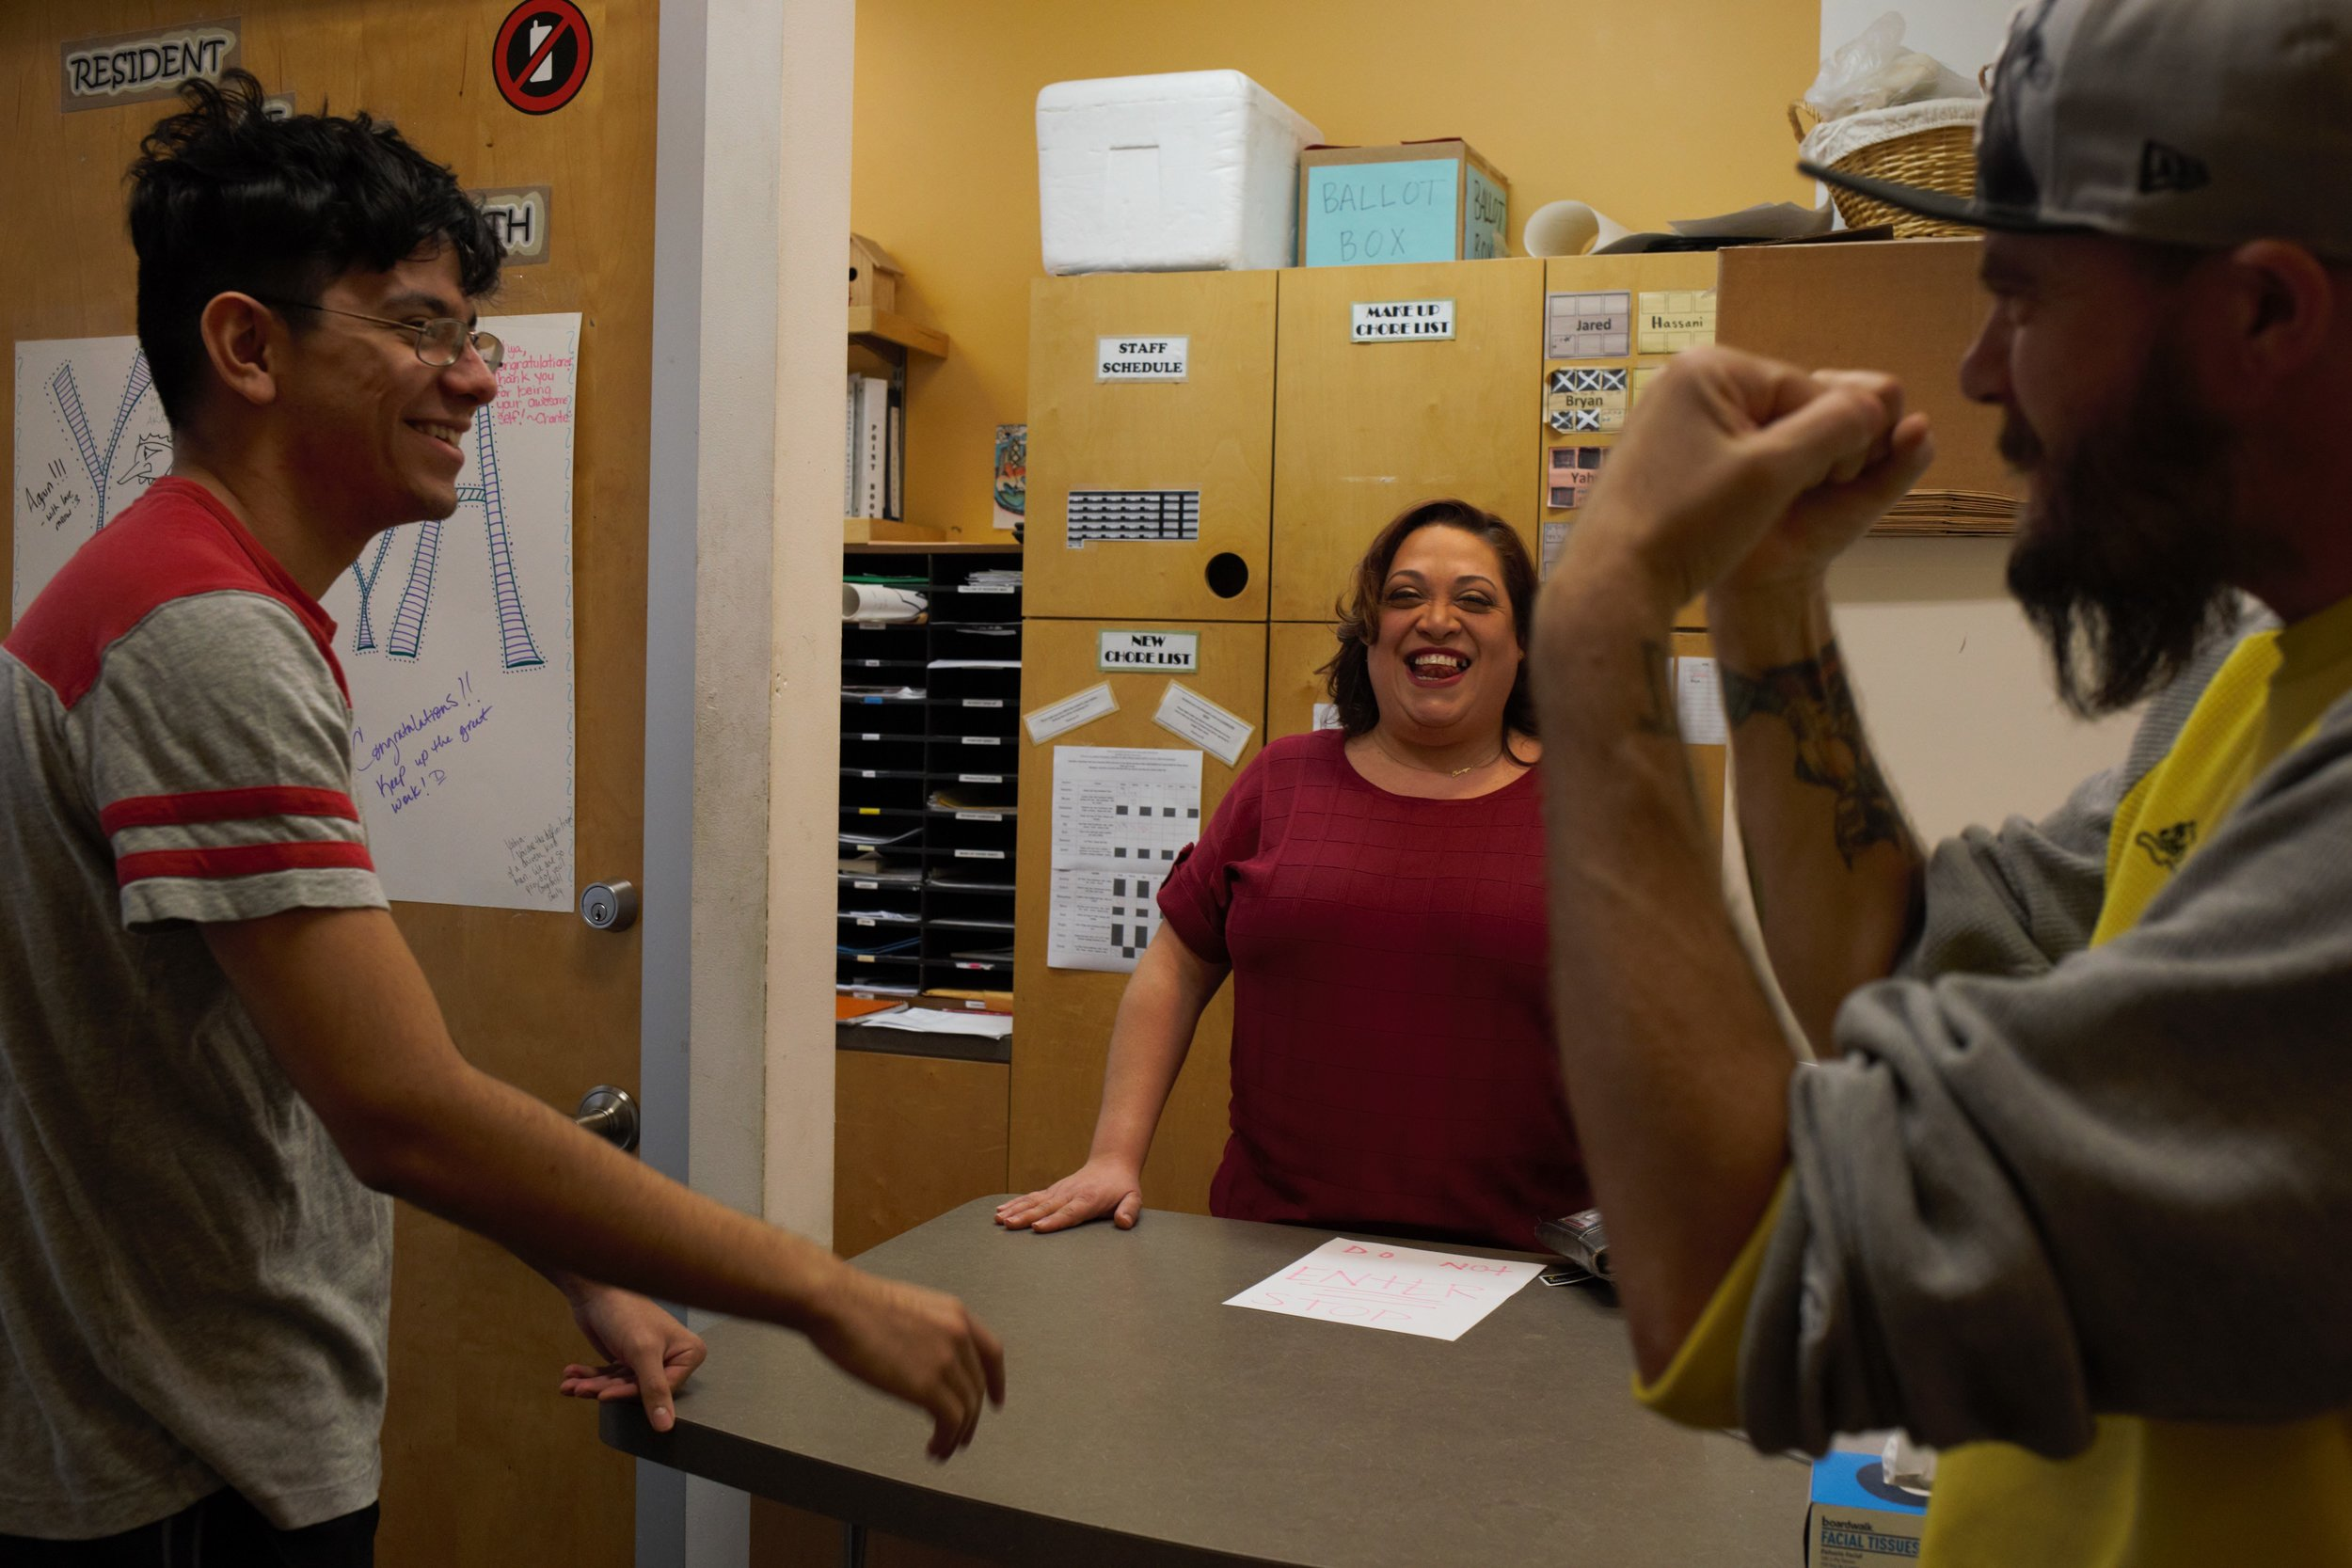 Program manager Beatriz Albelo laughs with residents of a supportive housing program for youth in Chicago.